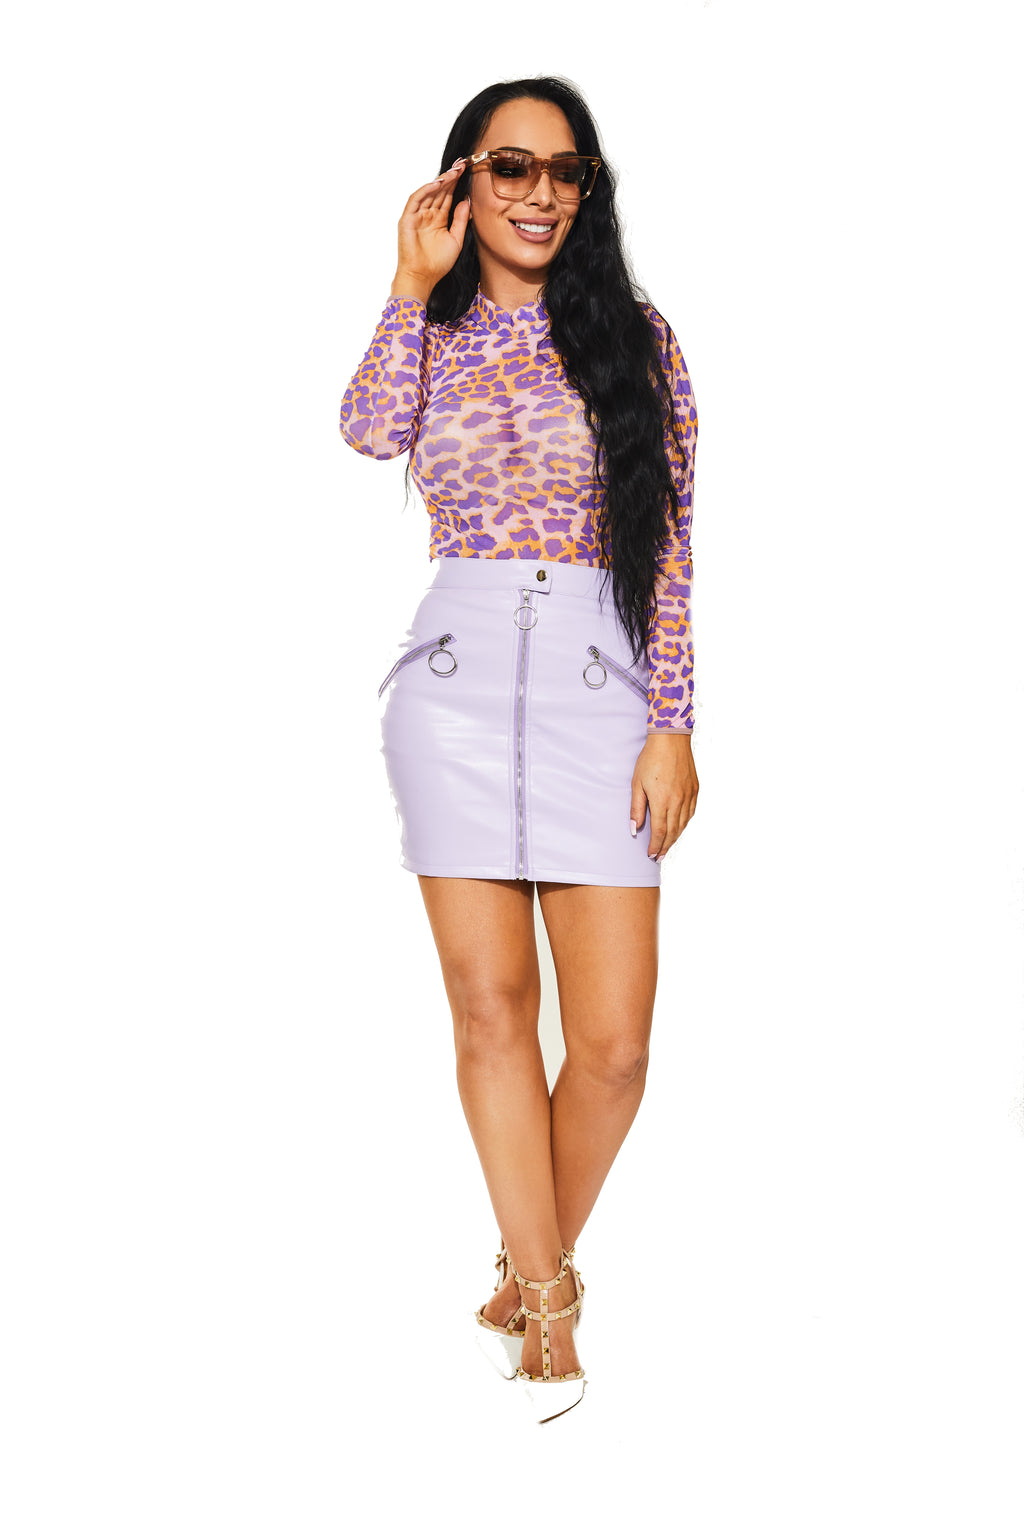 ALL EYES ON ME - Skirt - Lavender - www.prettyboutique.com